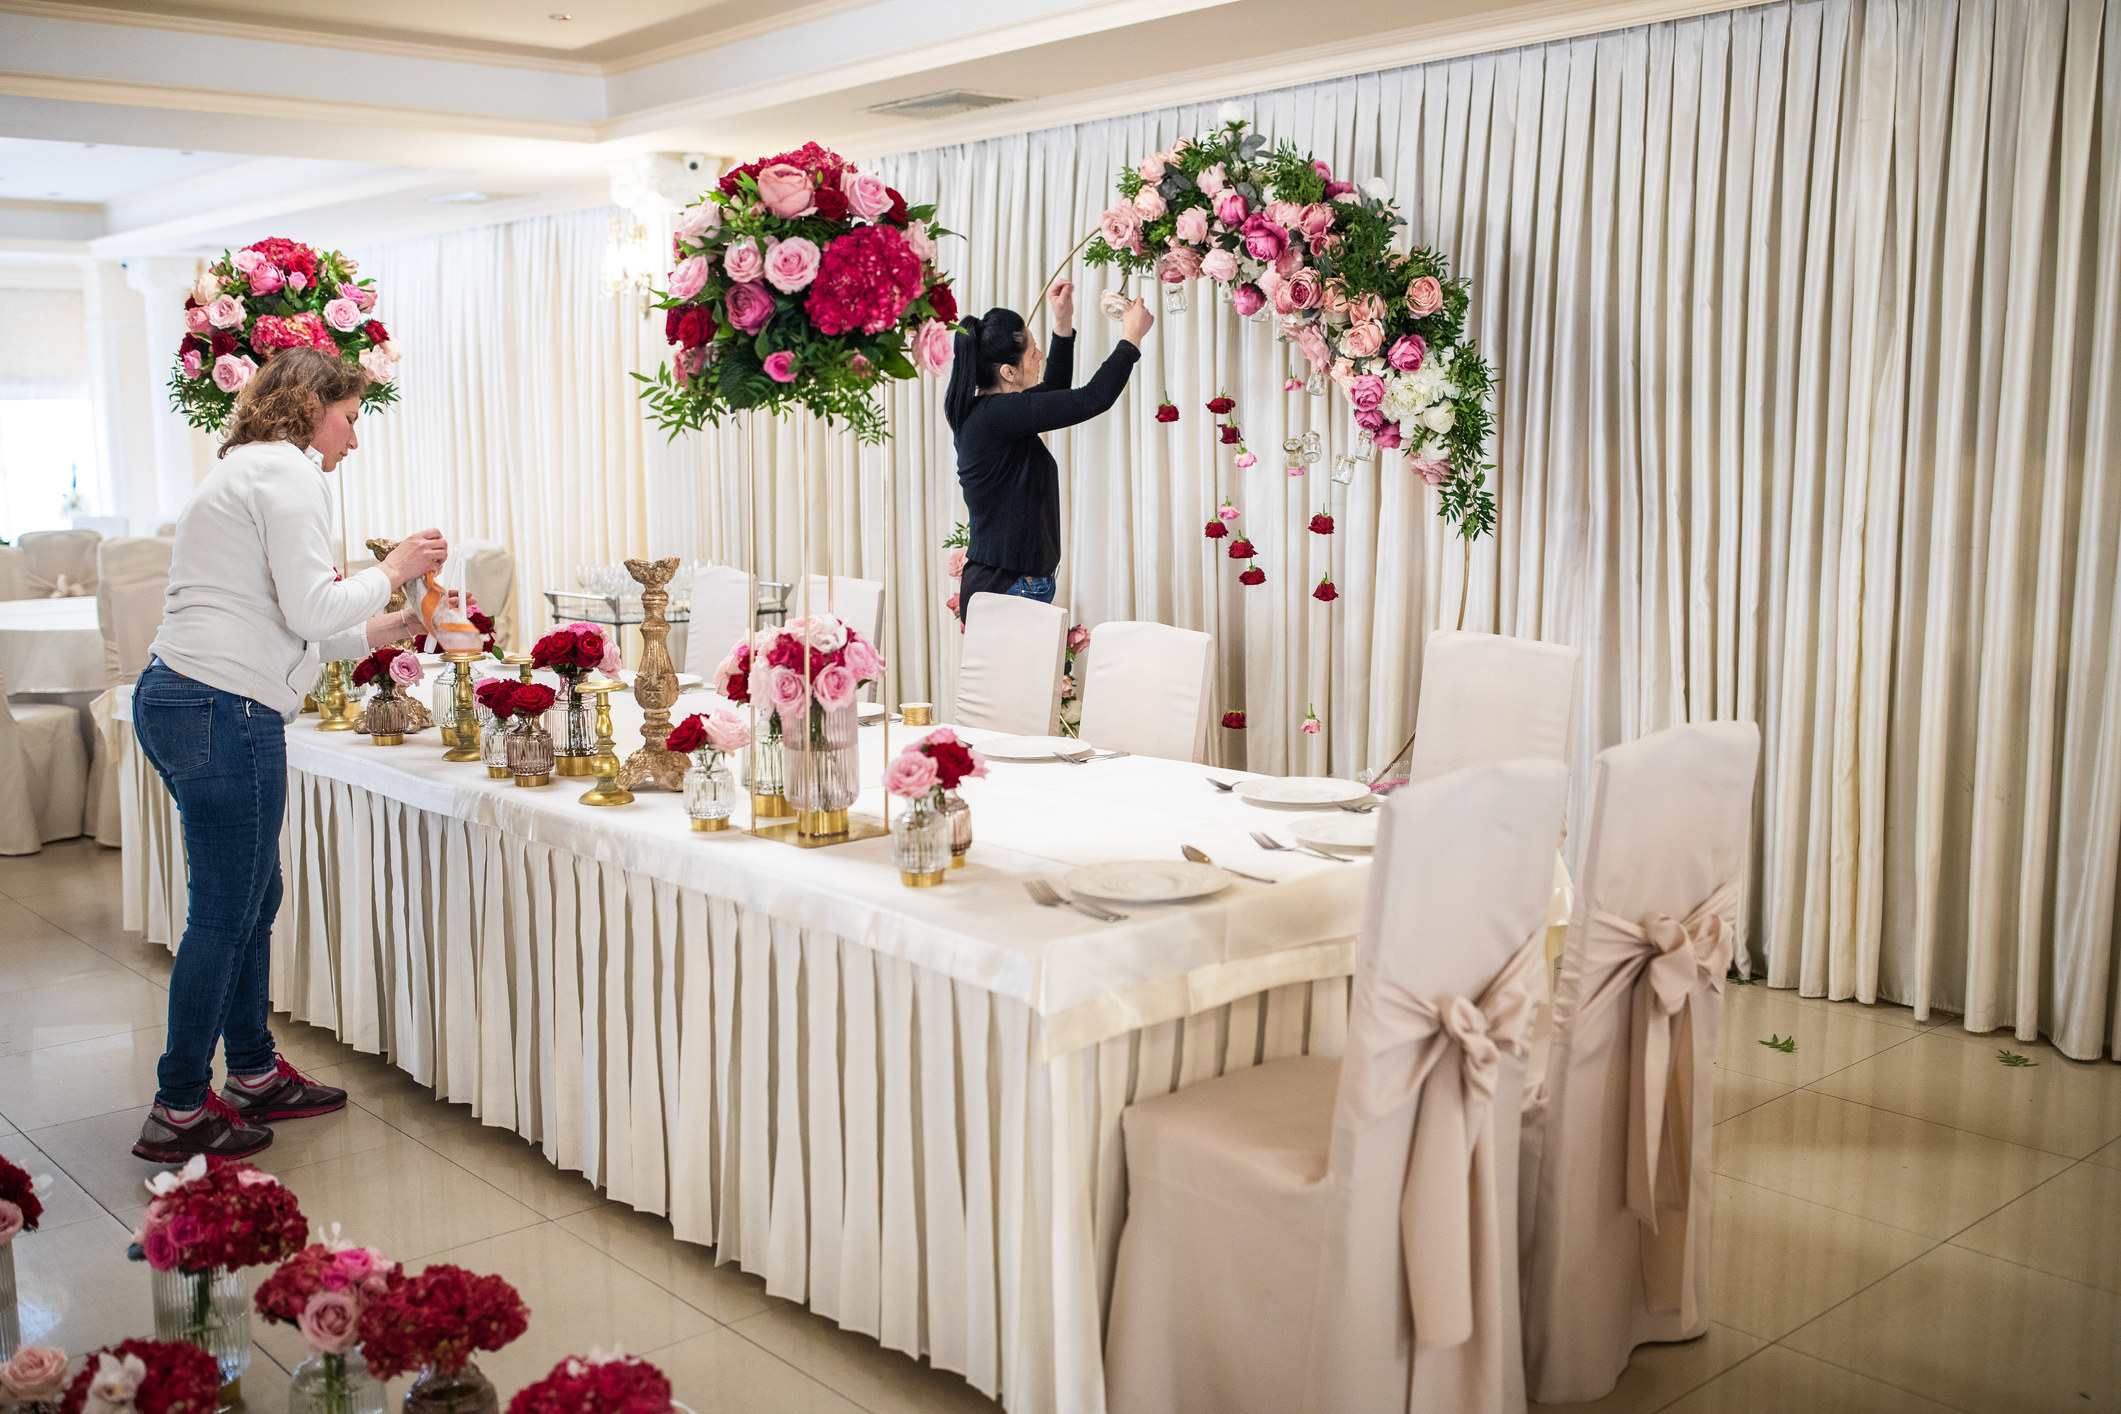 People decorating a venue with flowers